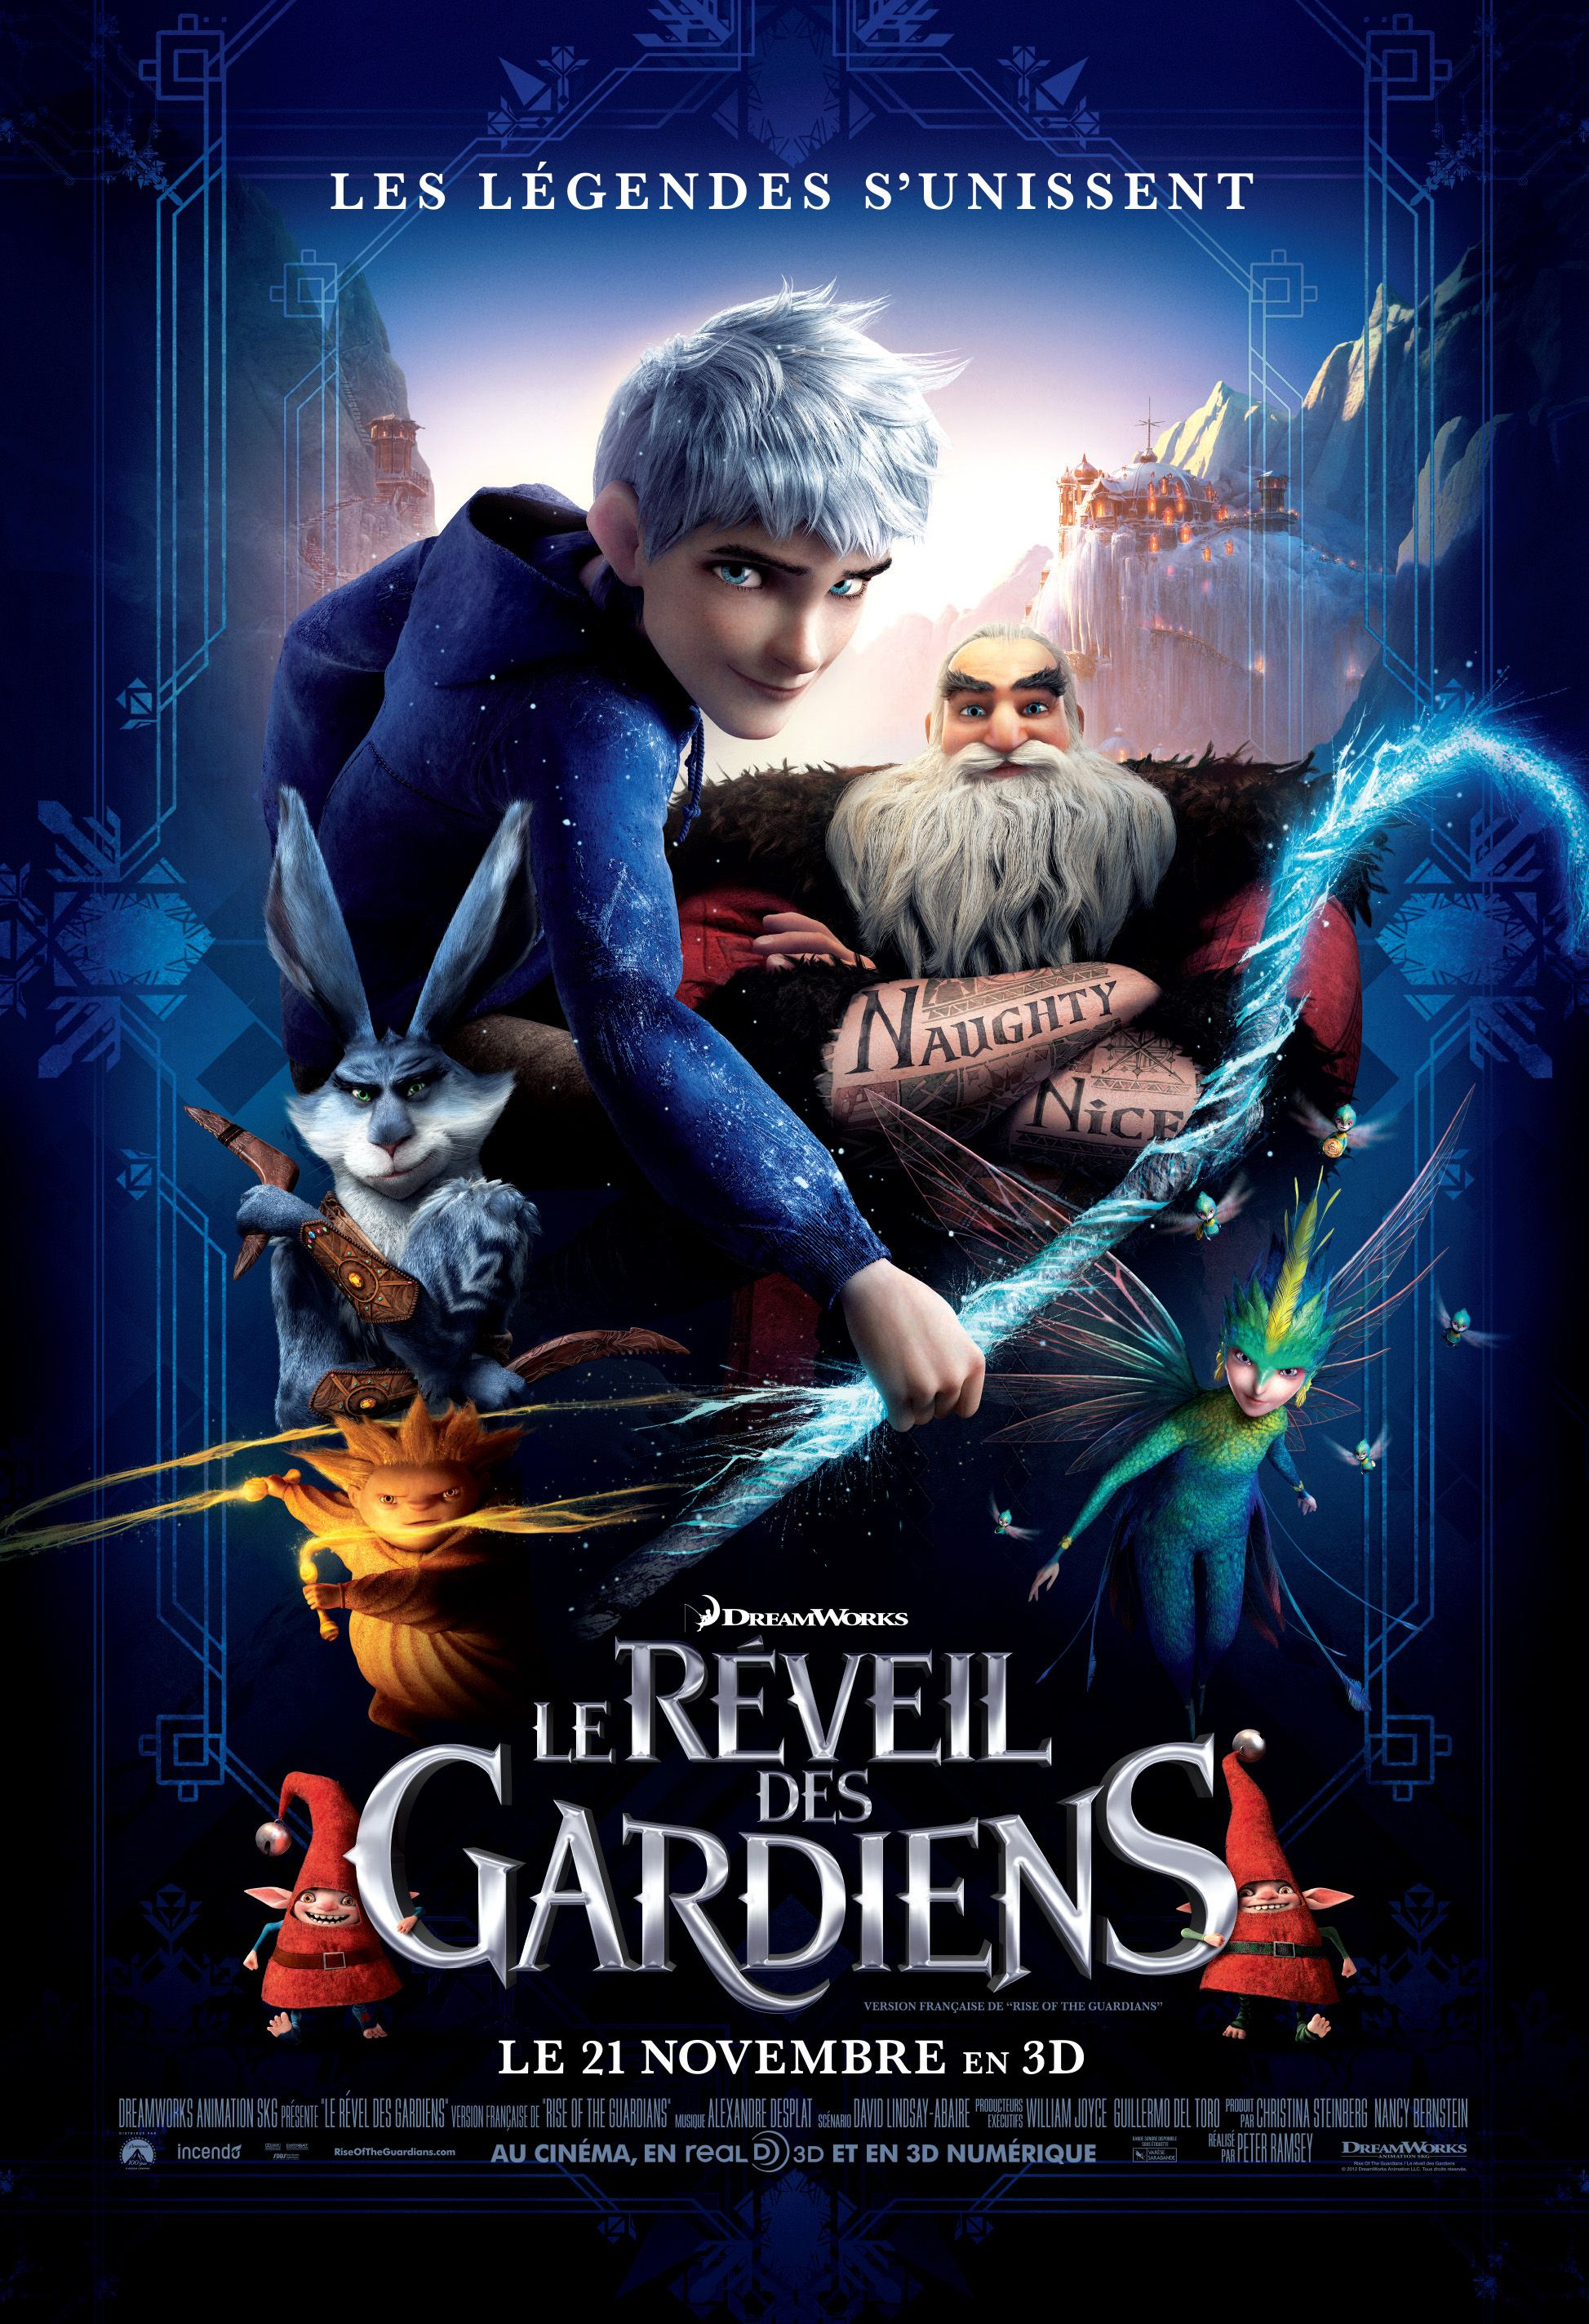 Characters of dreamworks d dreamworks animation photo pictures to pin - Rise Of The Guardians Film Poster French Canadian Version Courtesy Dreamworks Animation Visit